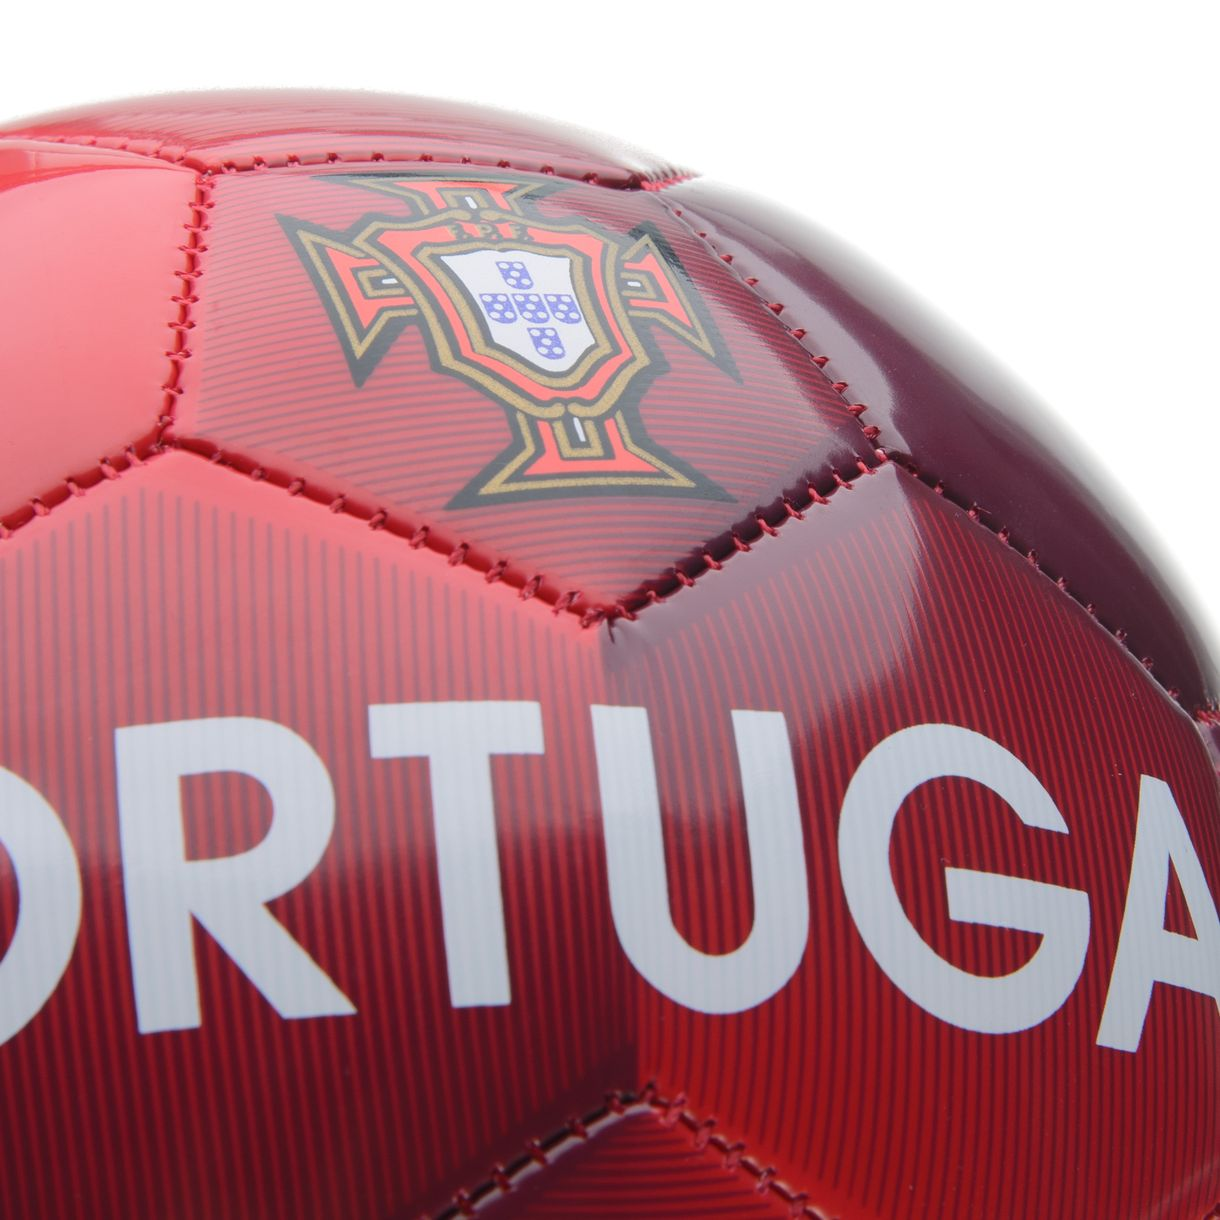 Portugal 2016-2017 Skills Football (Red)  SC2796-687  -  10.43 Teamzo.com 51ba641f086ed